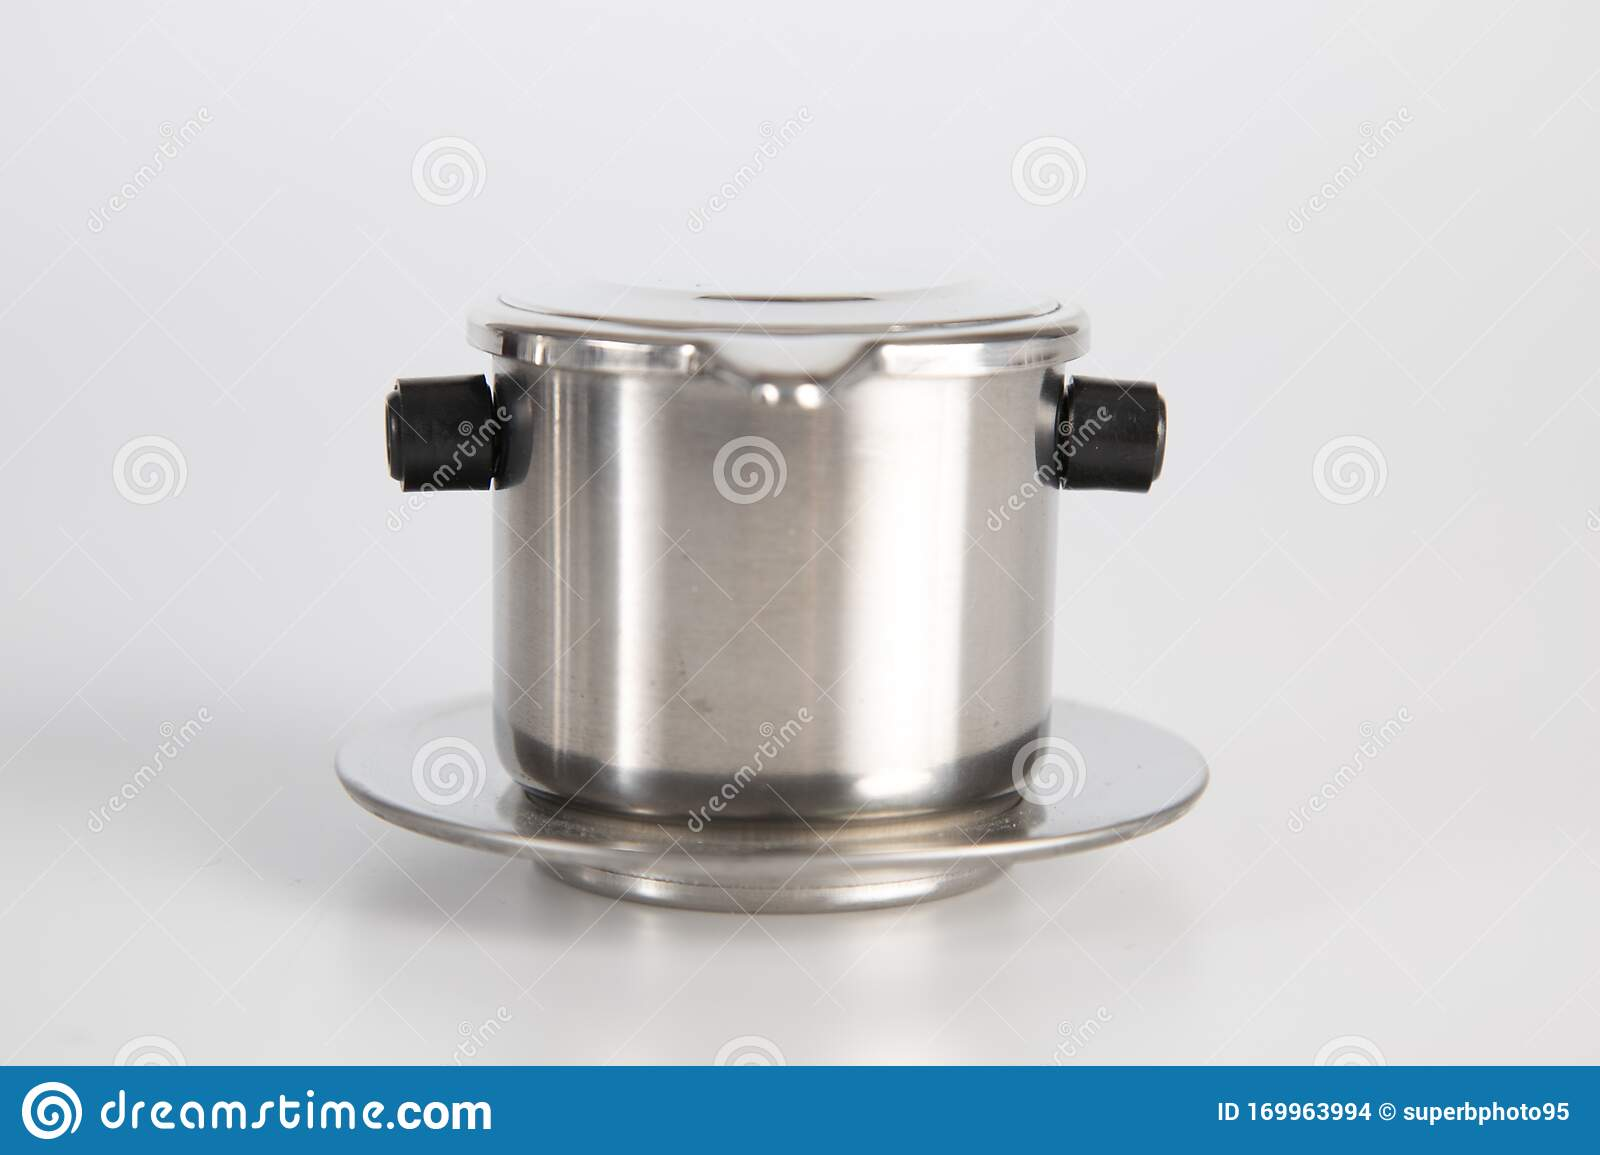 Vietnamese Coffee Press On White Background Metallic Coffee Filter Cup Brewing Coffee In Vietnam Stainless Steel Single Cup Stock Photo Image Of Brewing Maker 169963994